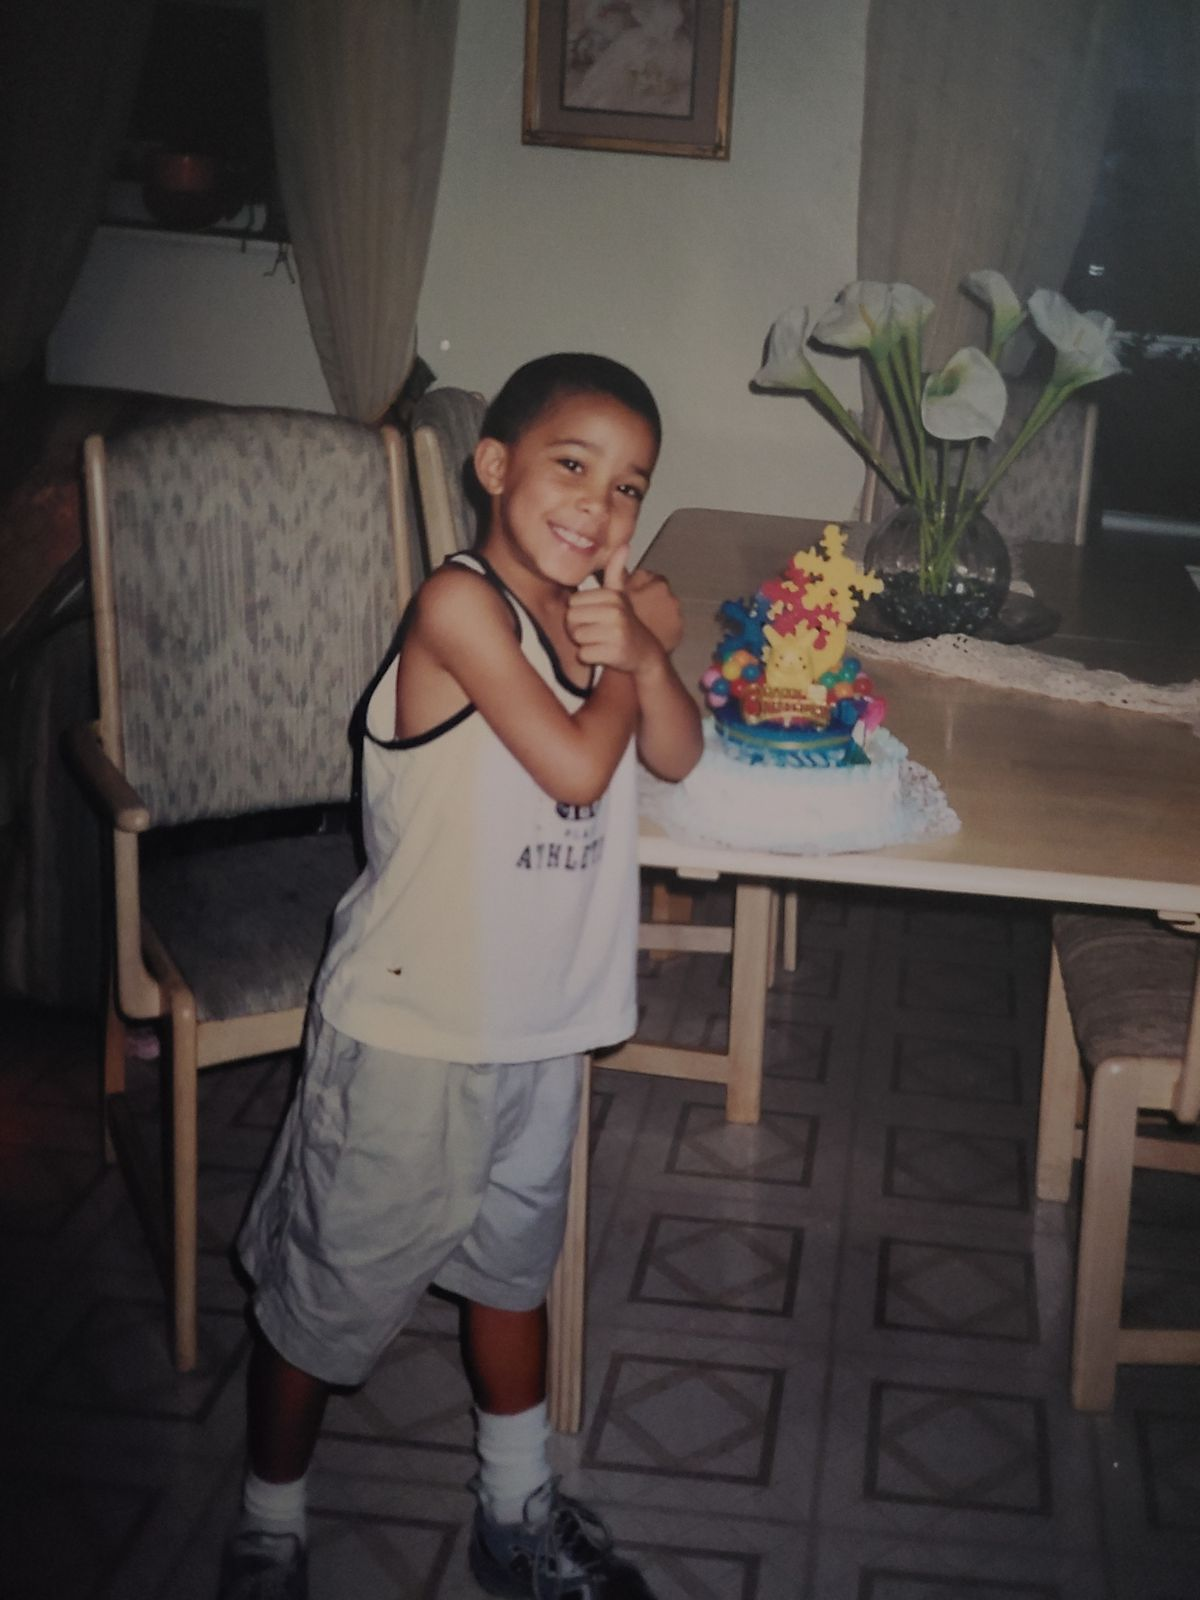 A boy smiles and gives a thumbs up toward the camera, standing at a dining room table next to a birthday cake.